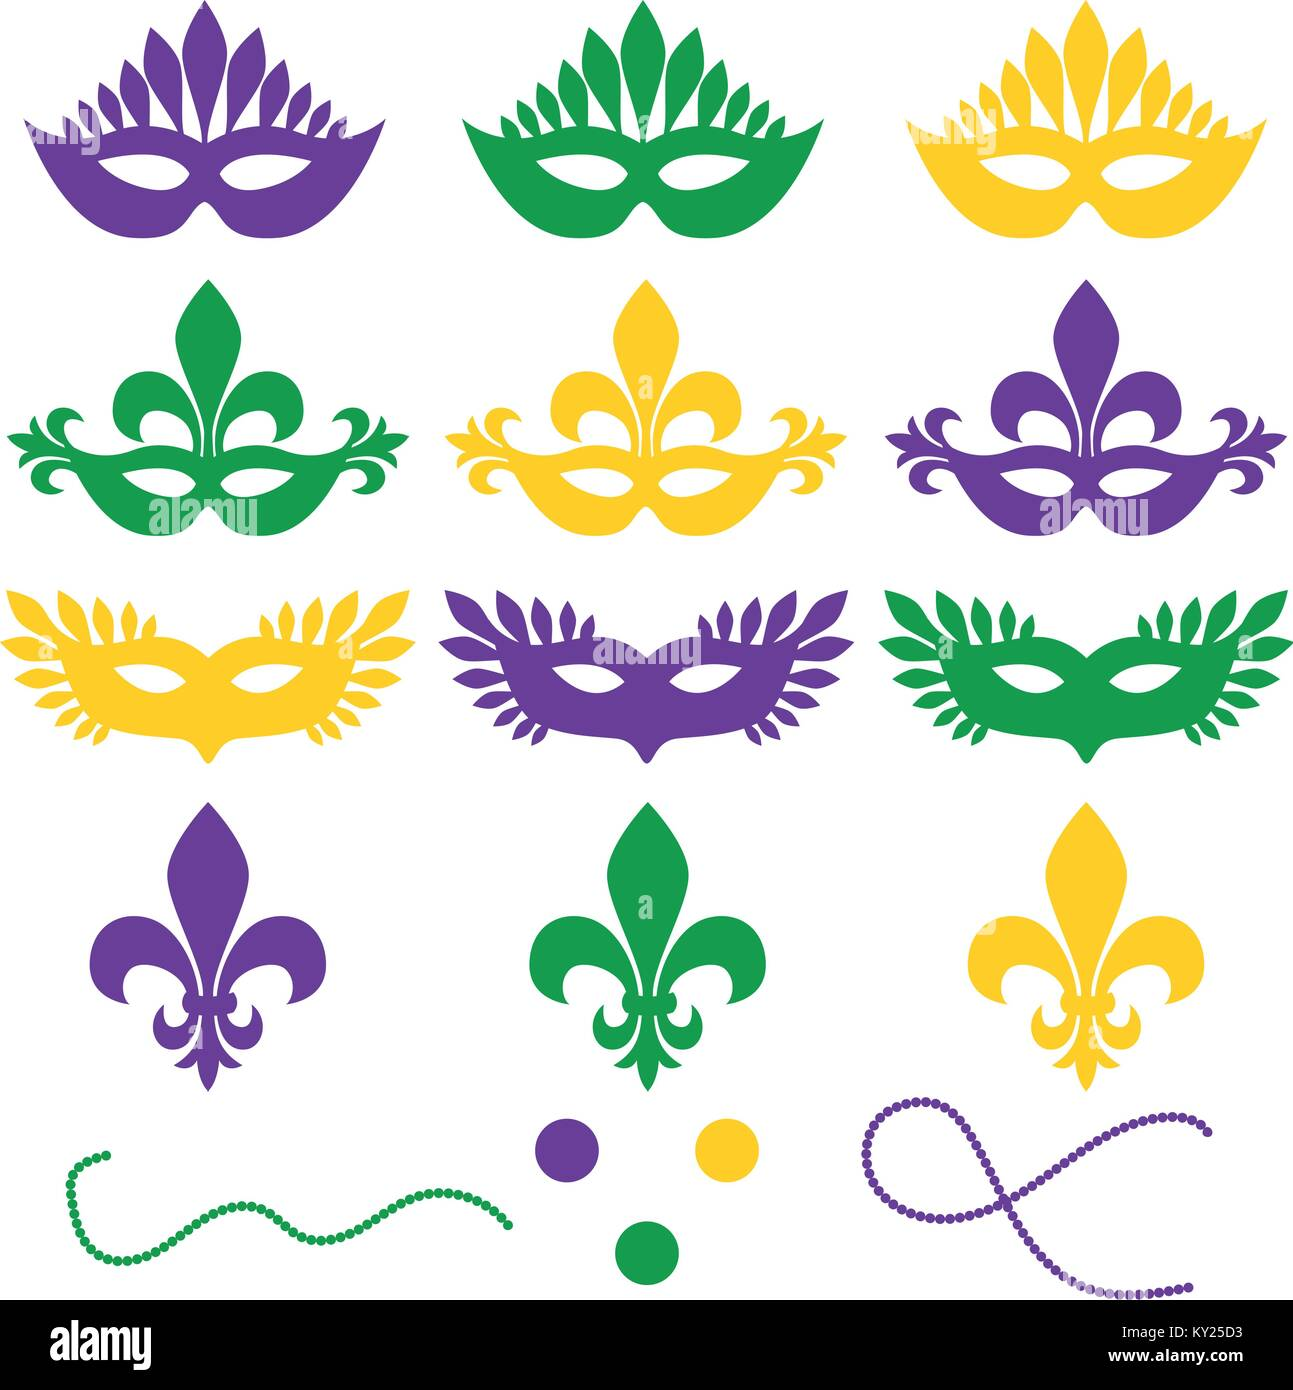 Mardi gras. Set of objects isolated on a white background - masks, beads, confetti, fleur de lis. Shrove Tuesday, - Stock Vector